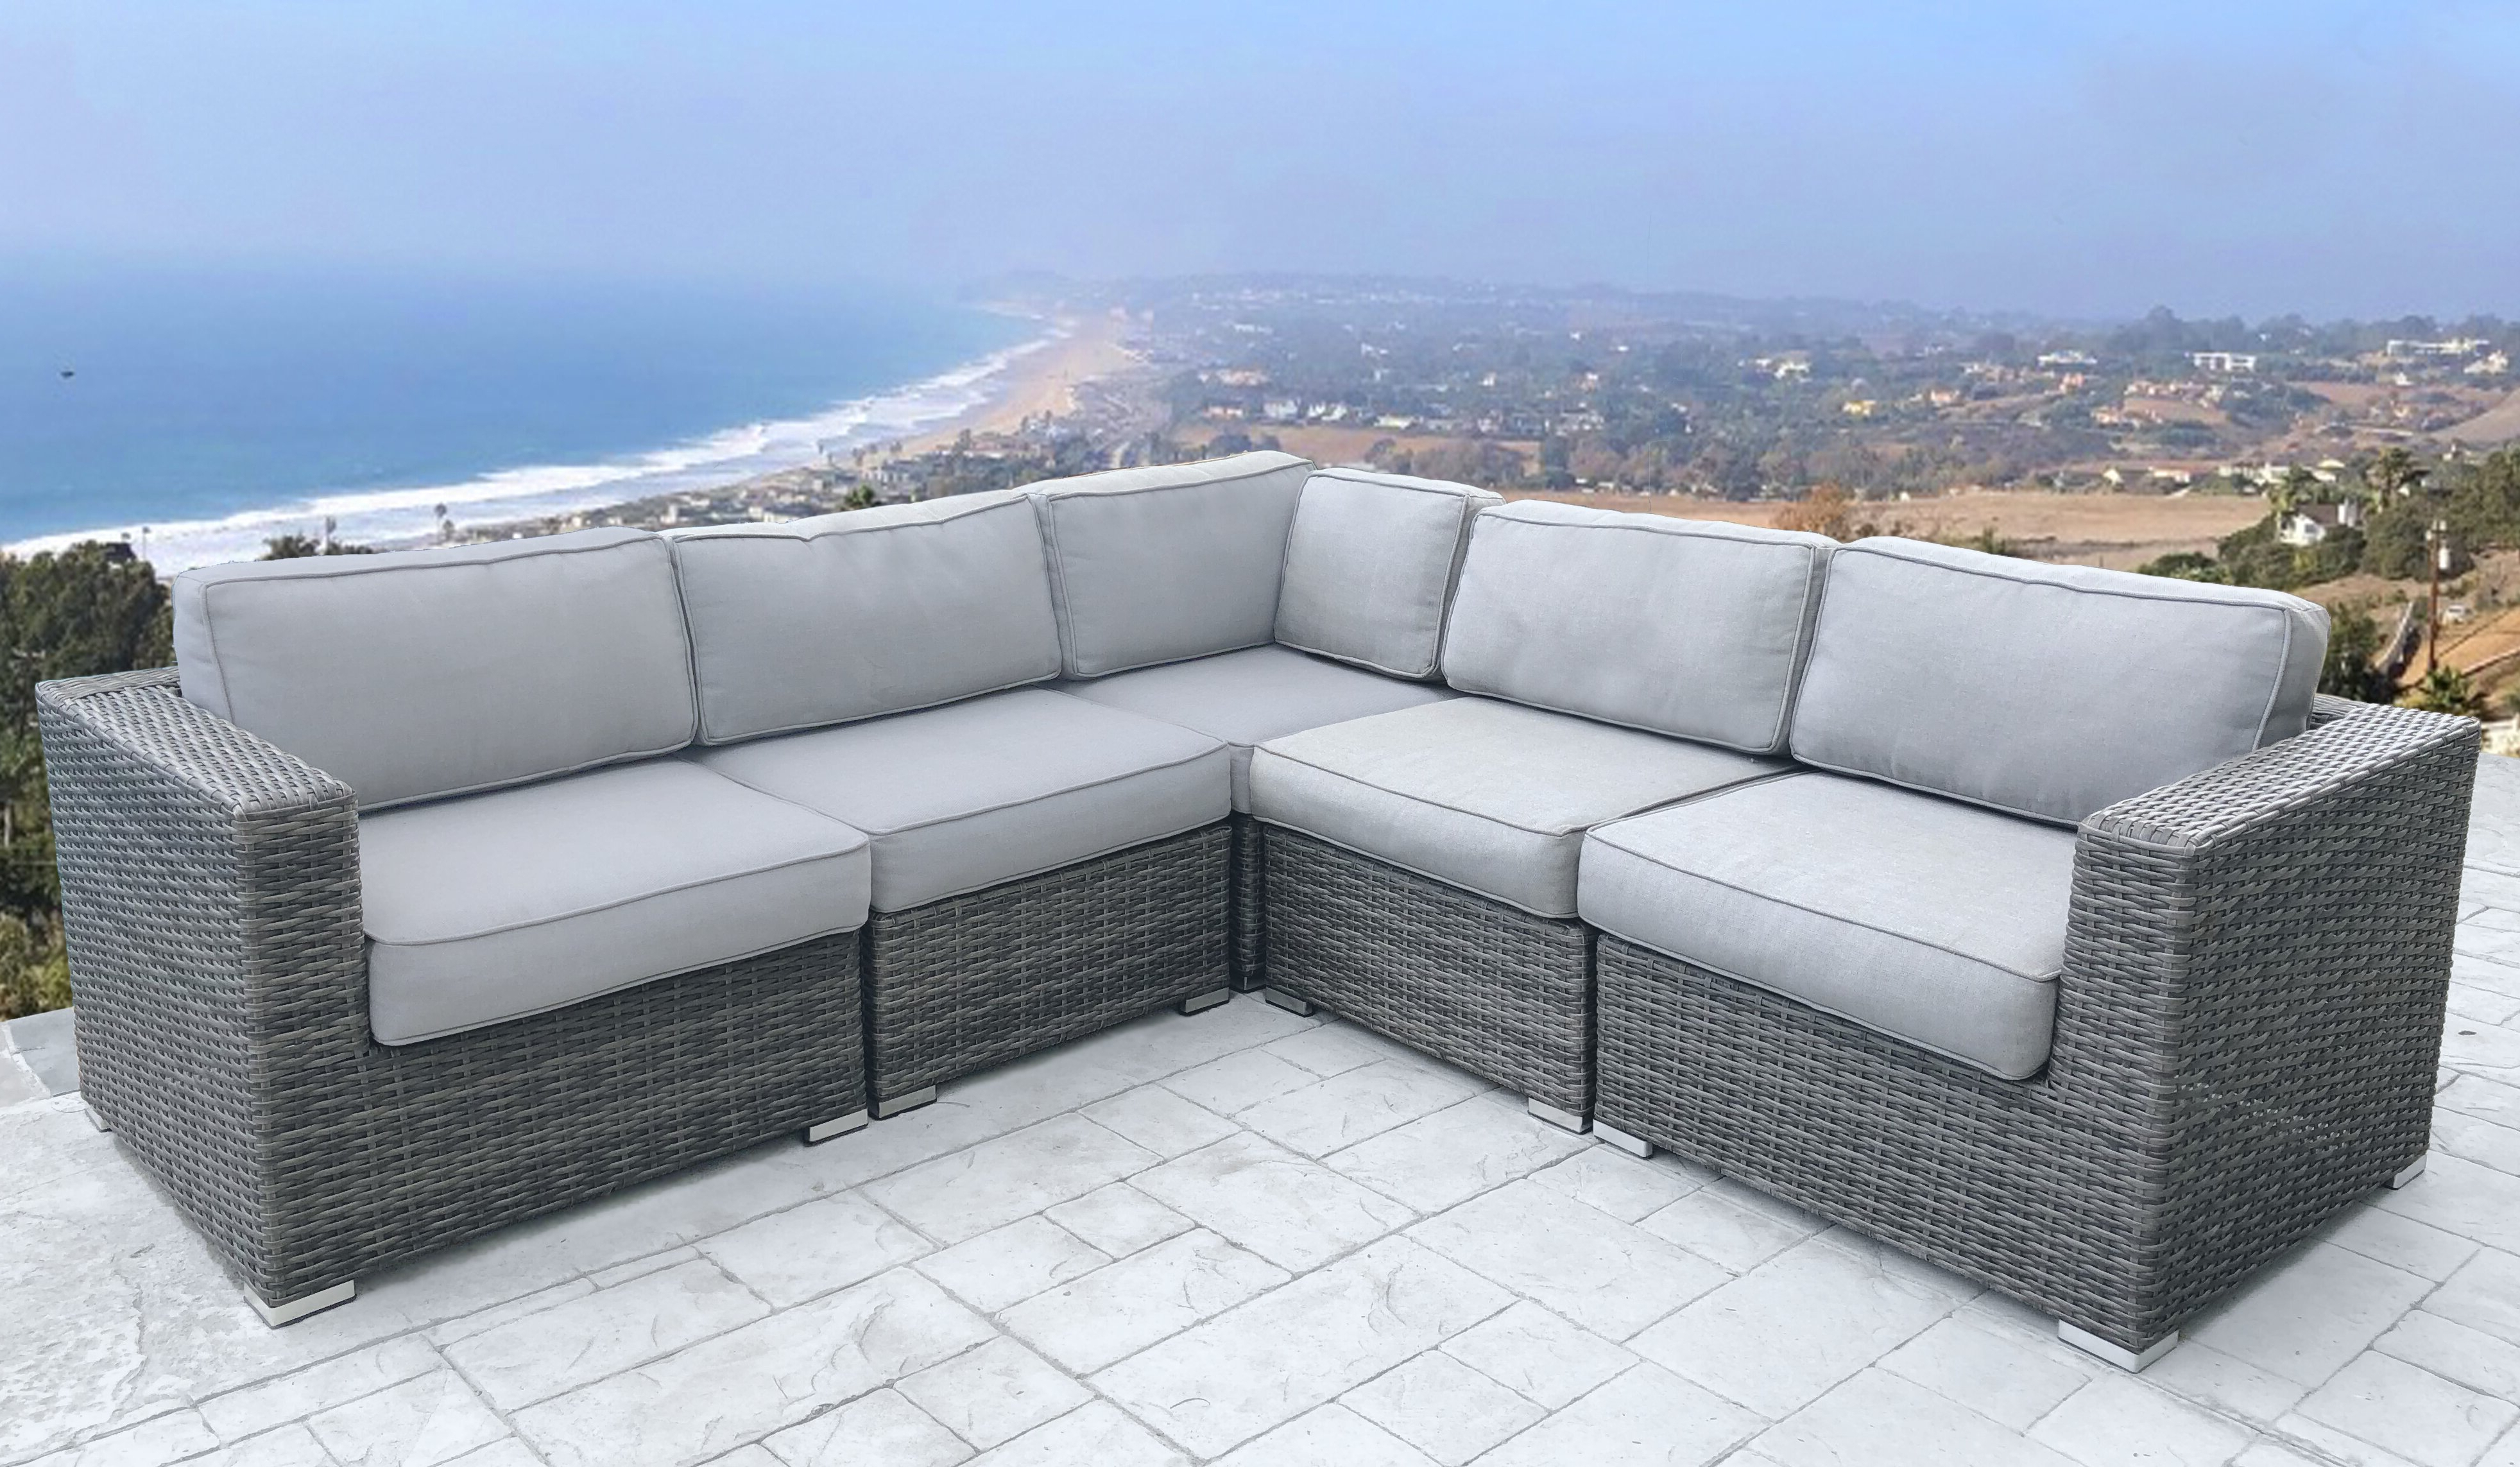 Trendy Rowley Patio Sofas Set With Cushions Throughout Nolen Patio Sectional With Cushions (View 18 of 20)